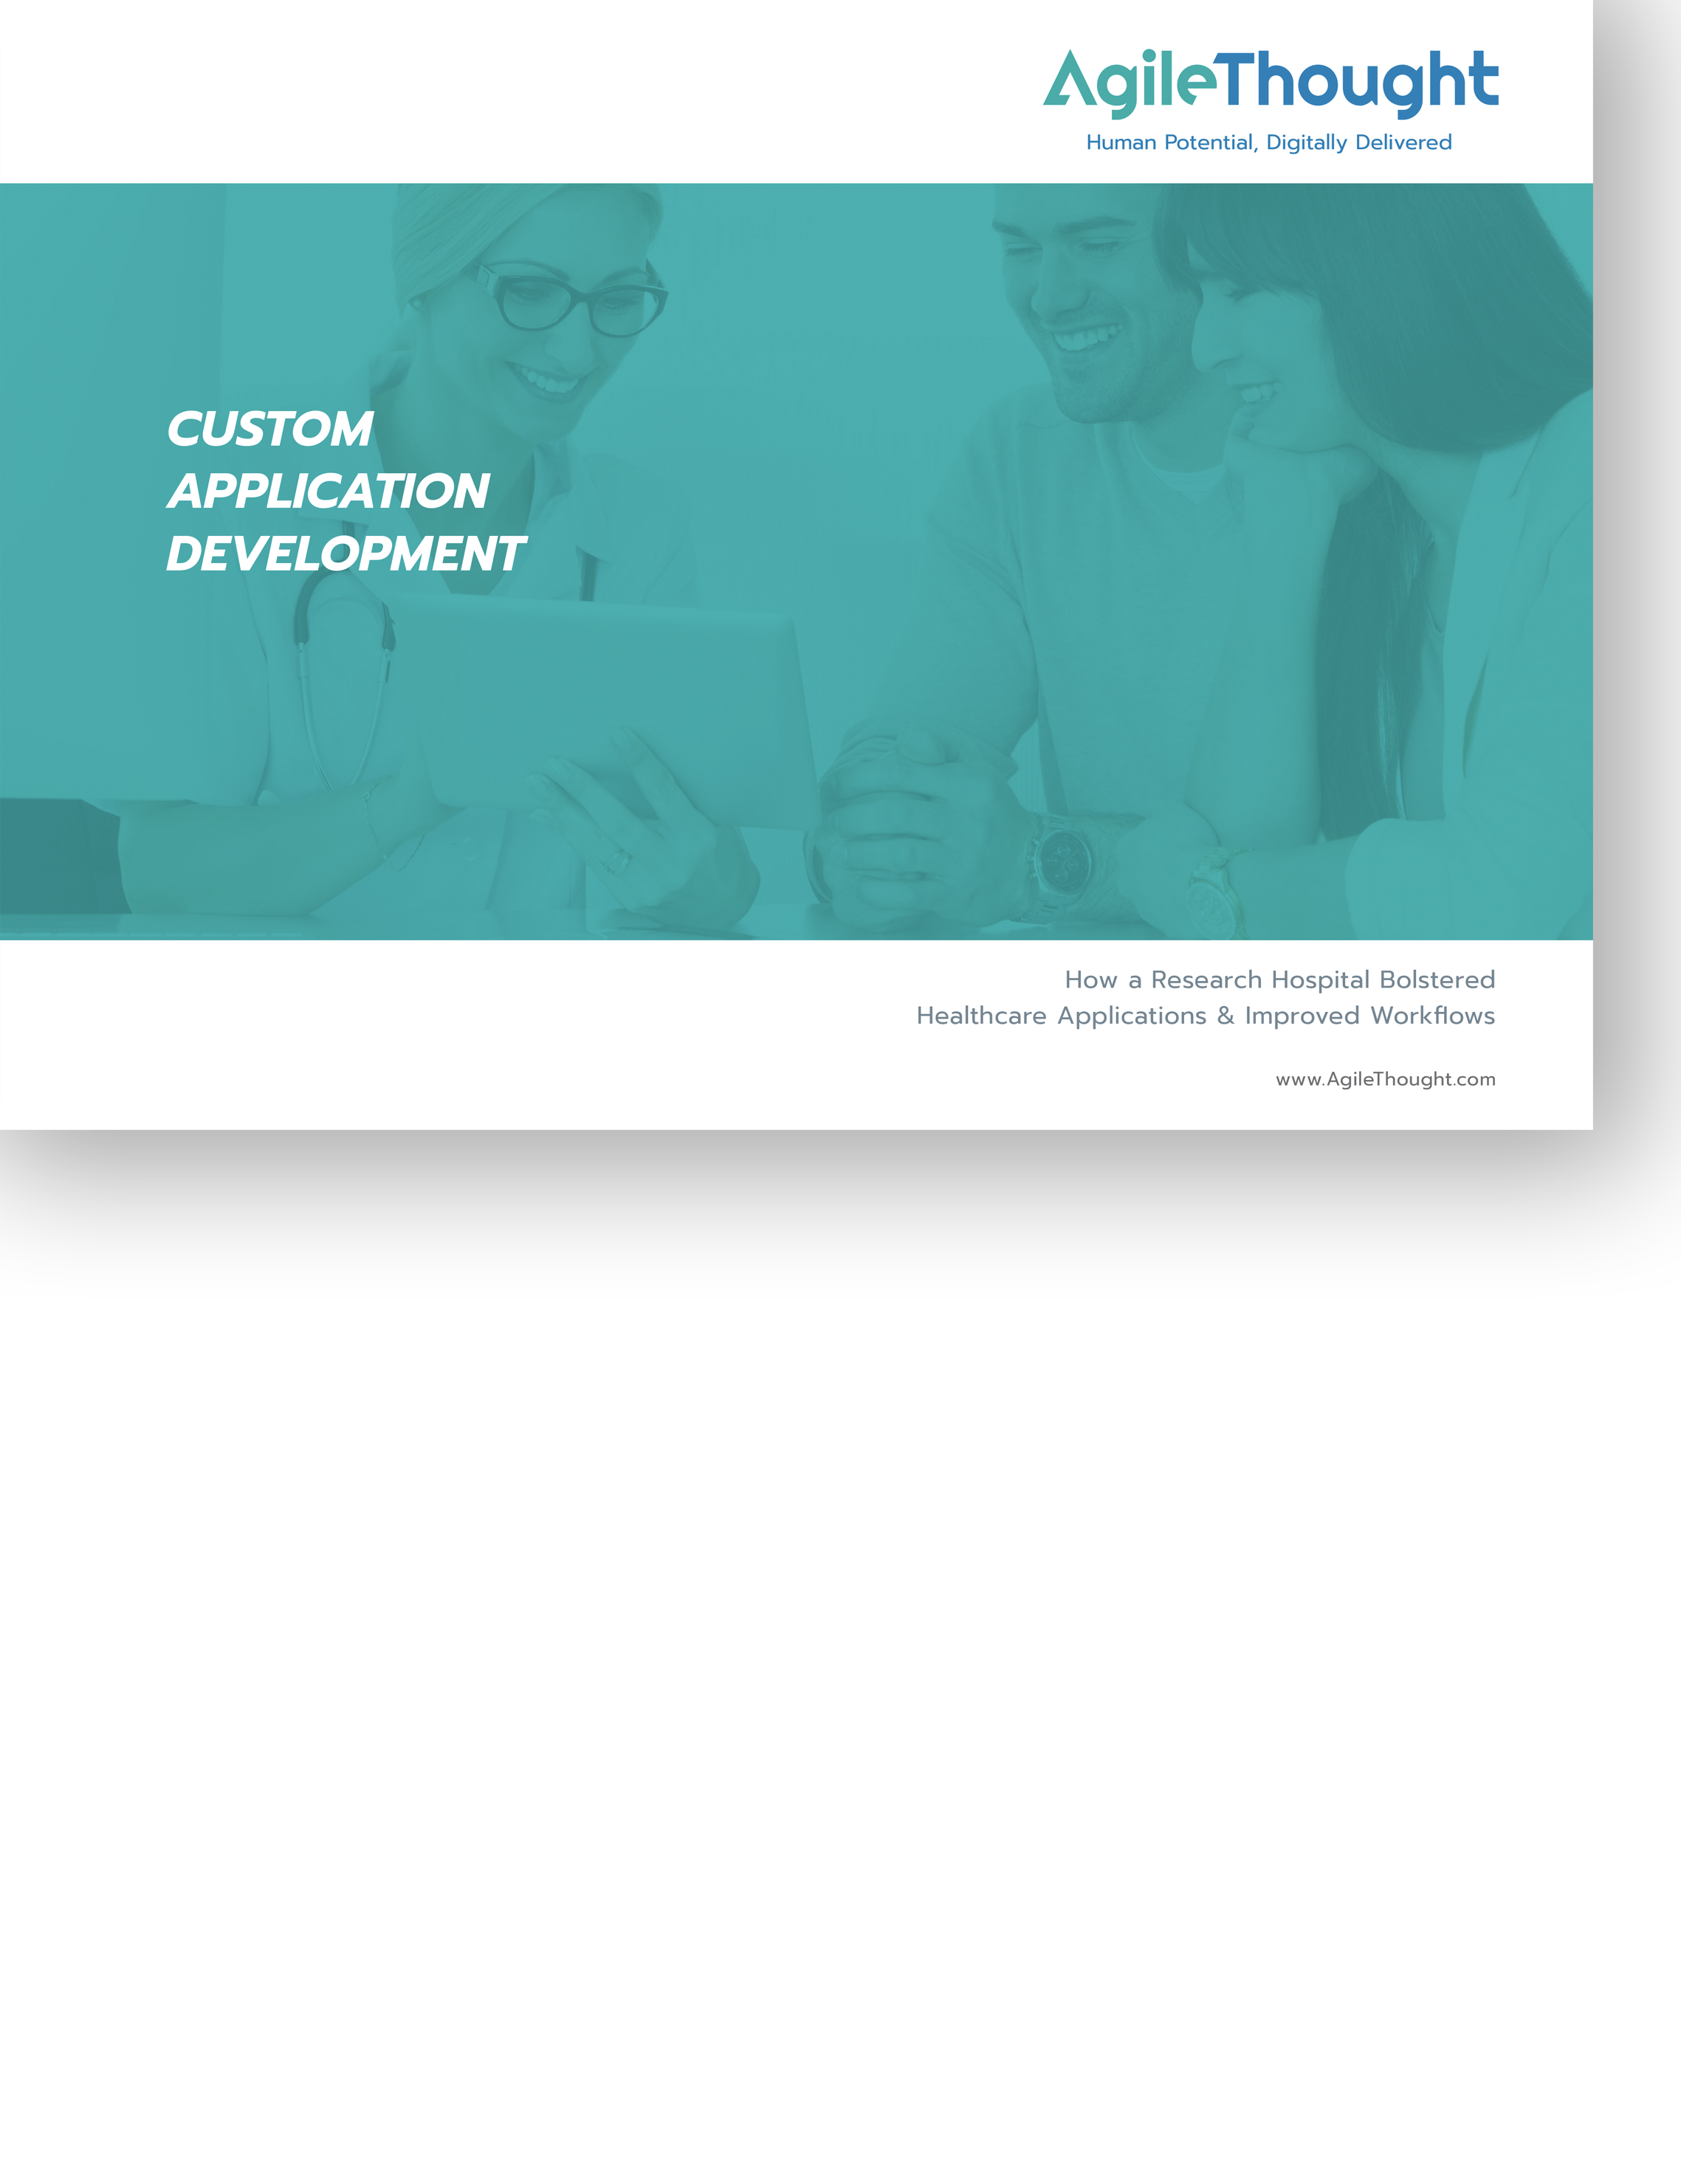 improve healthcare experience with custom development